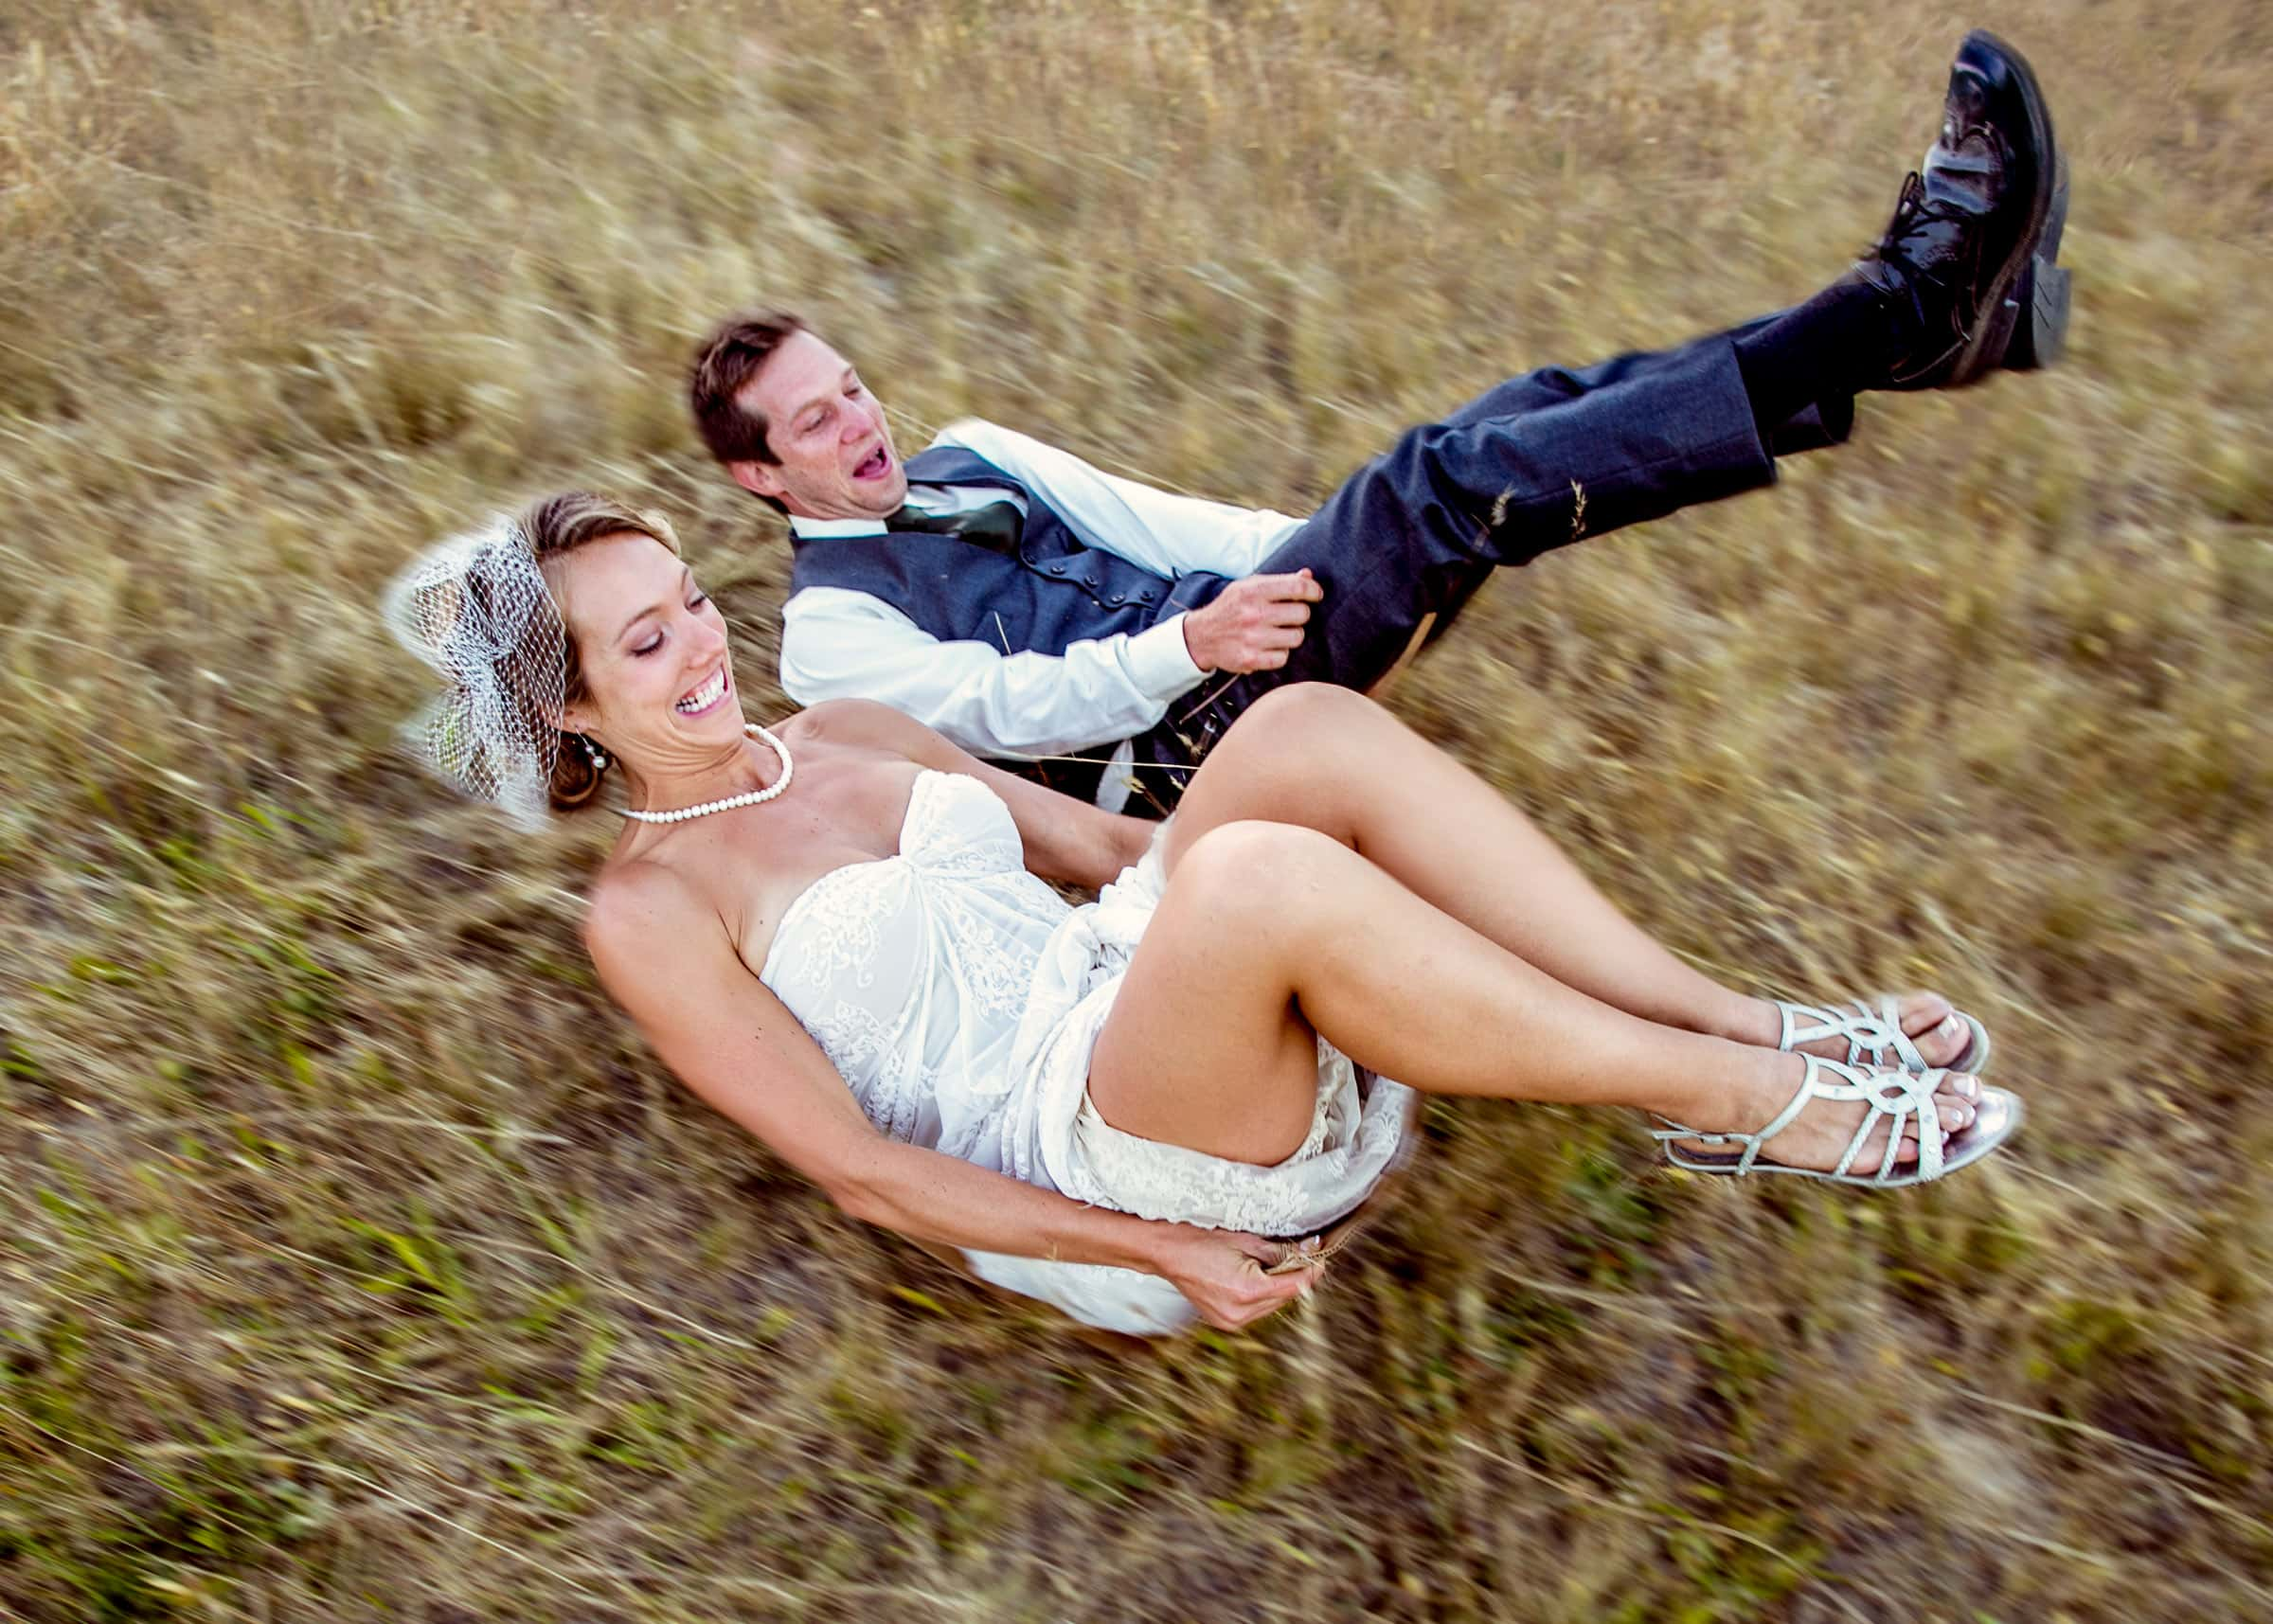 a happy bride and groom sliding on cardboard down a wheat field at sunset before heading into their Humboldt California wedding reception at Beginnings Briceland